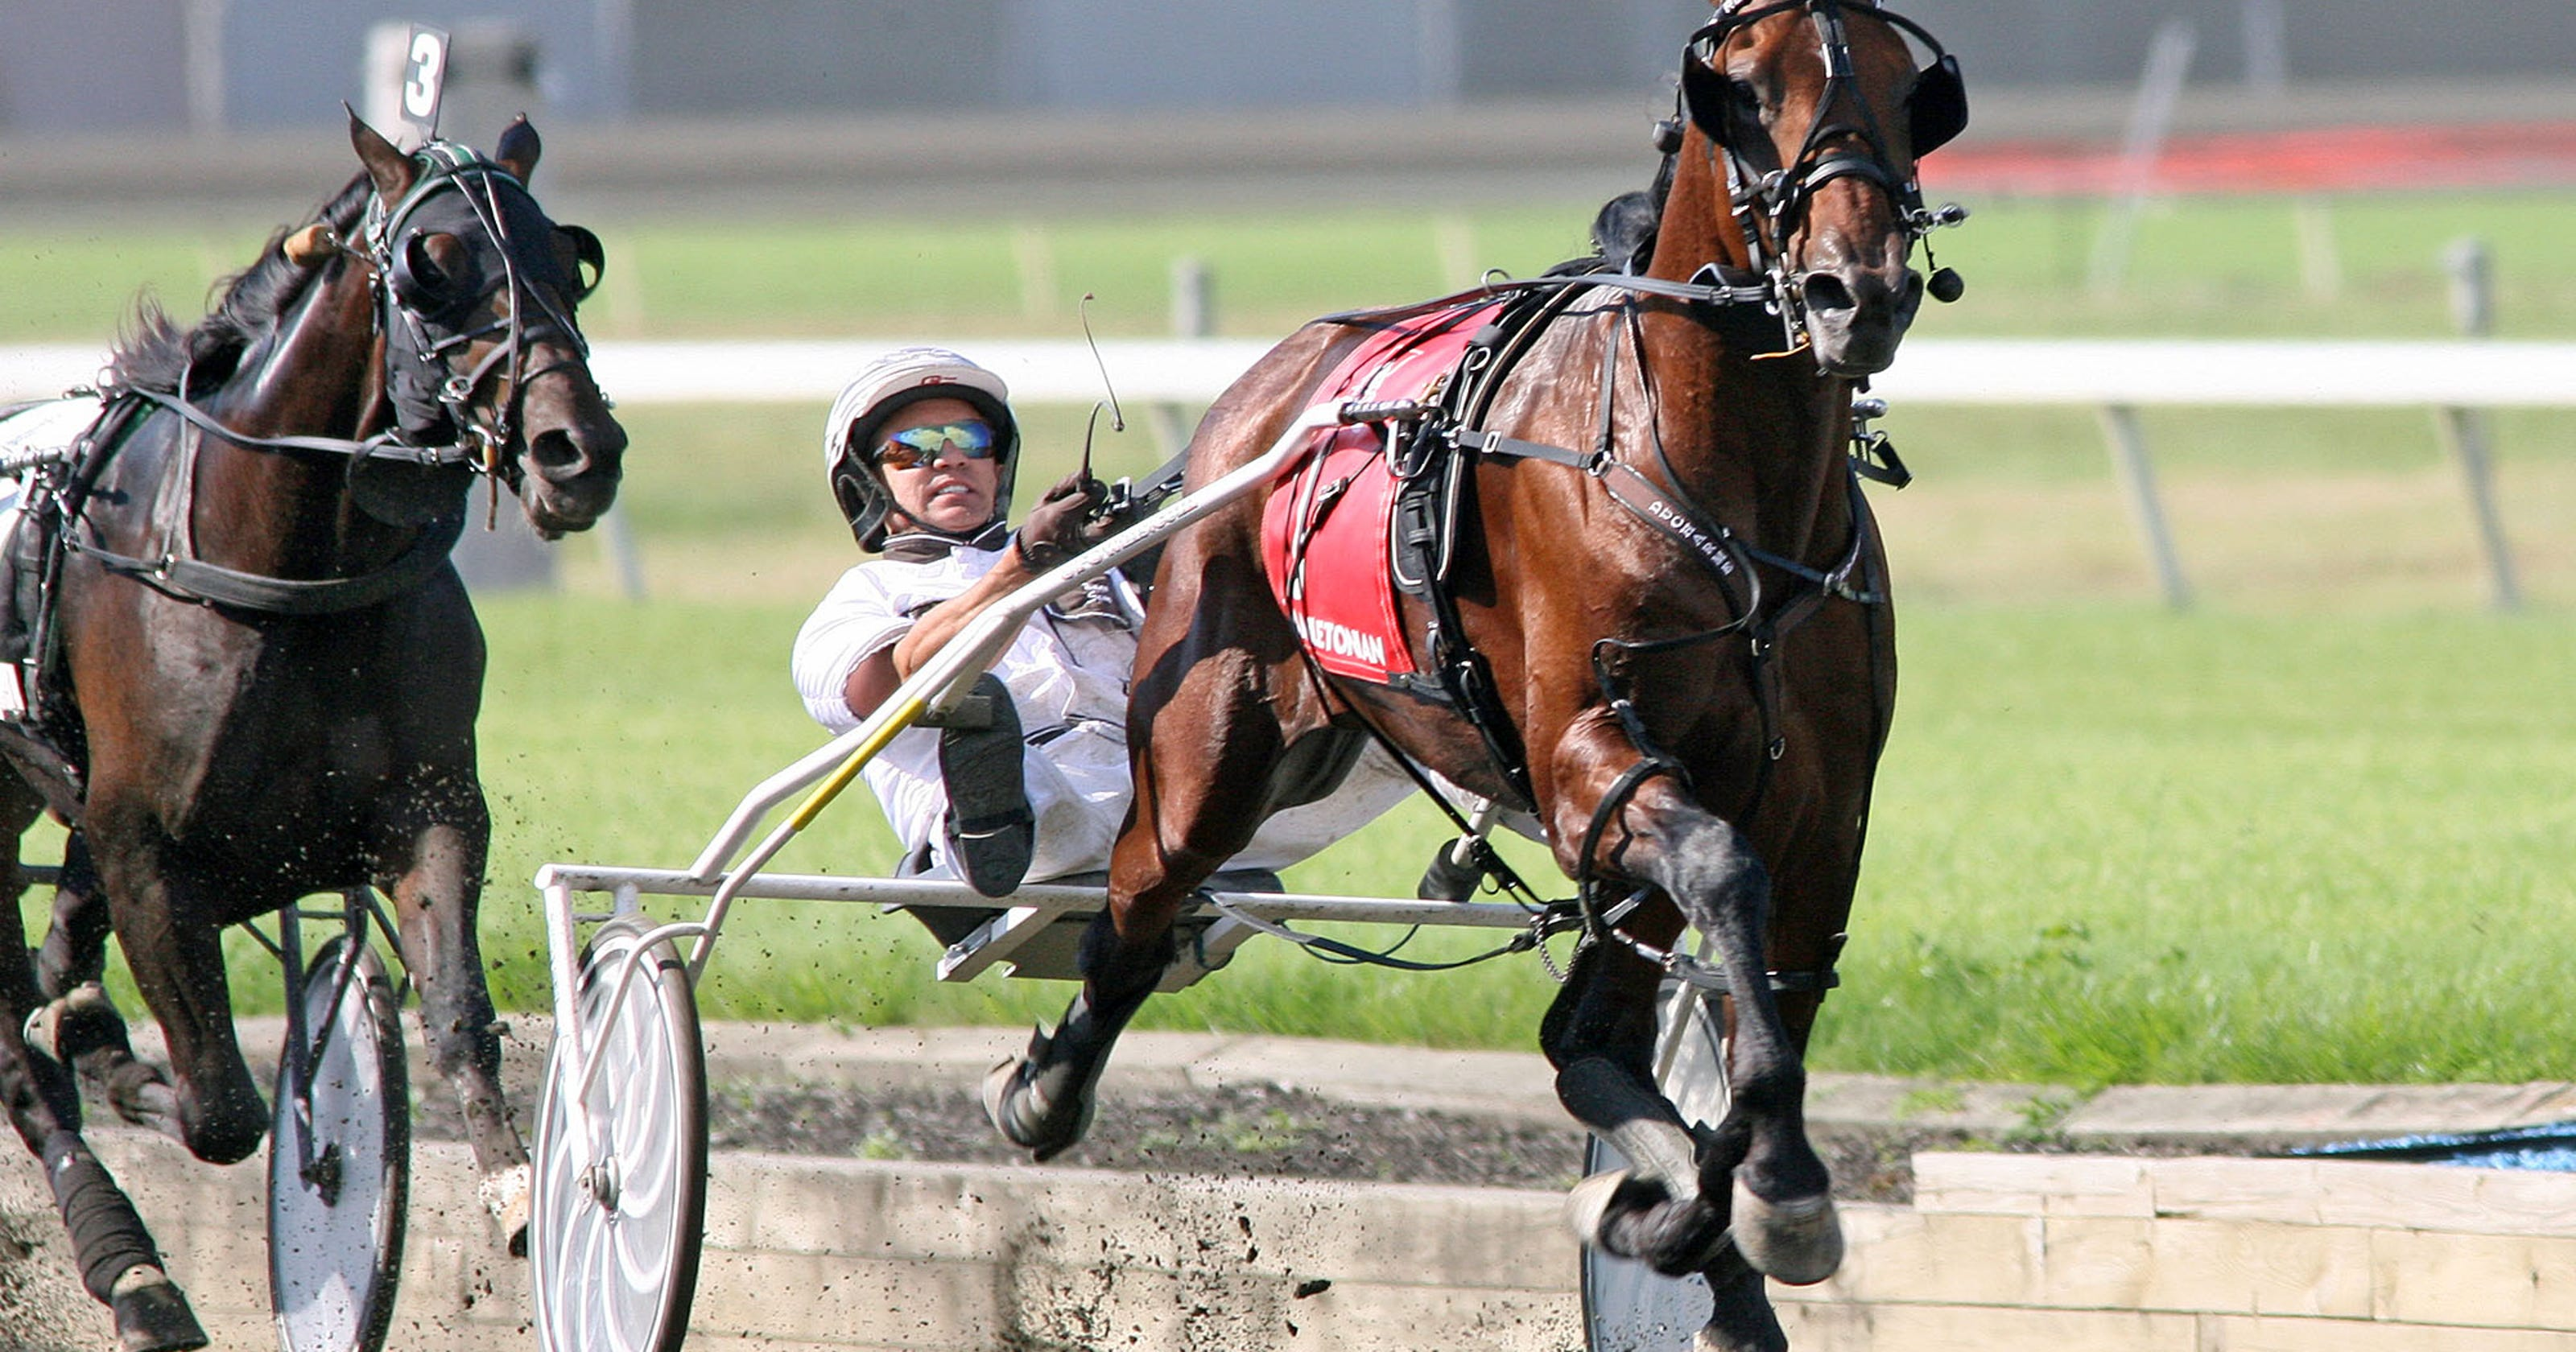 9 things I learned about harness racing